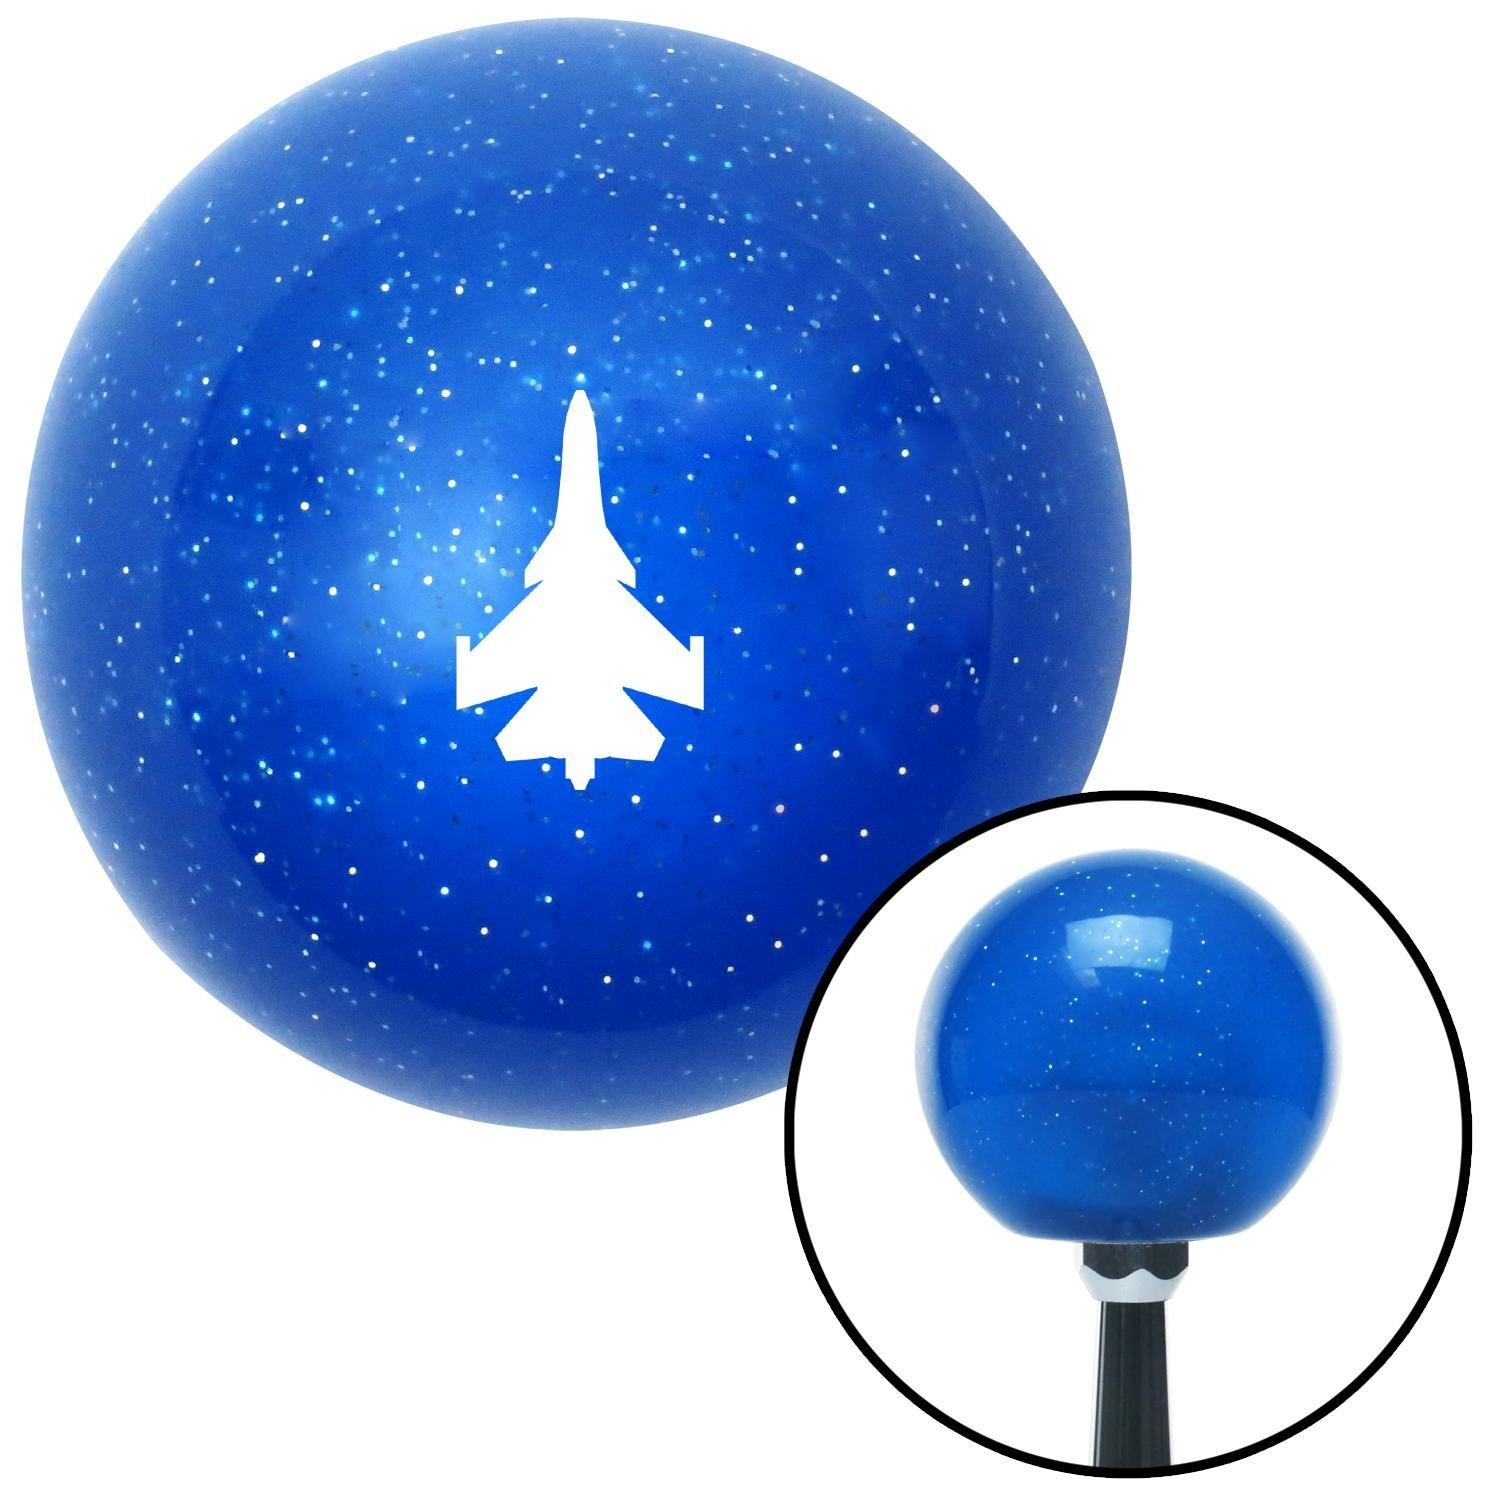 American Shifter 276362 Shift Knob White Jet Blue Metal Flake with M16 x 1.5 Insert